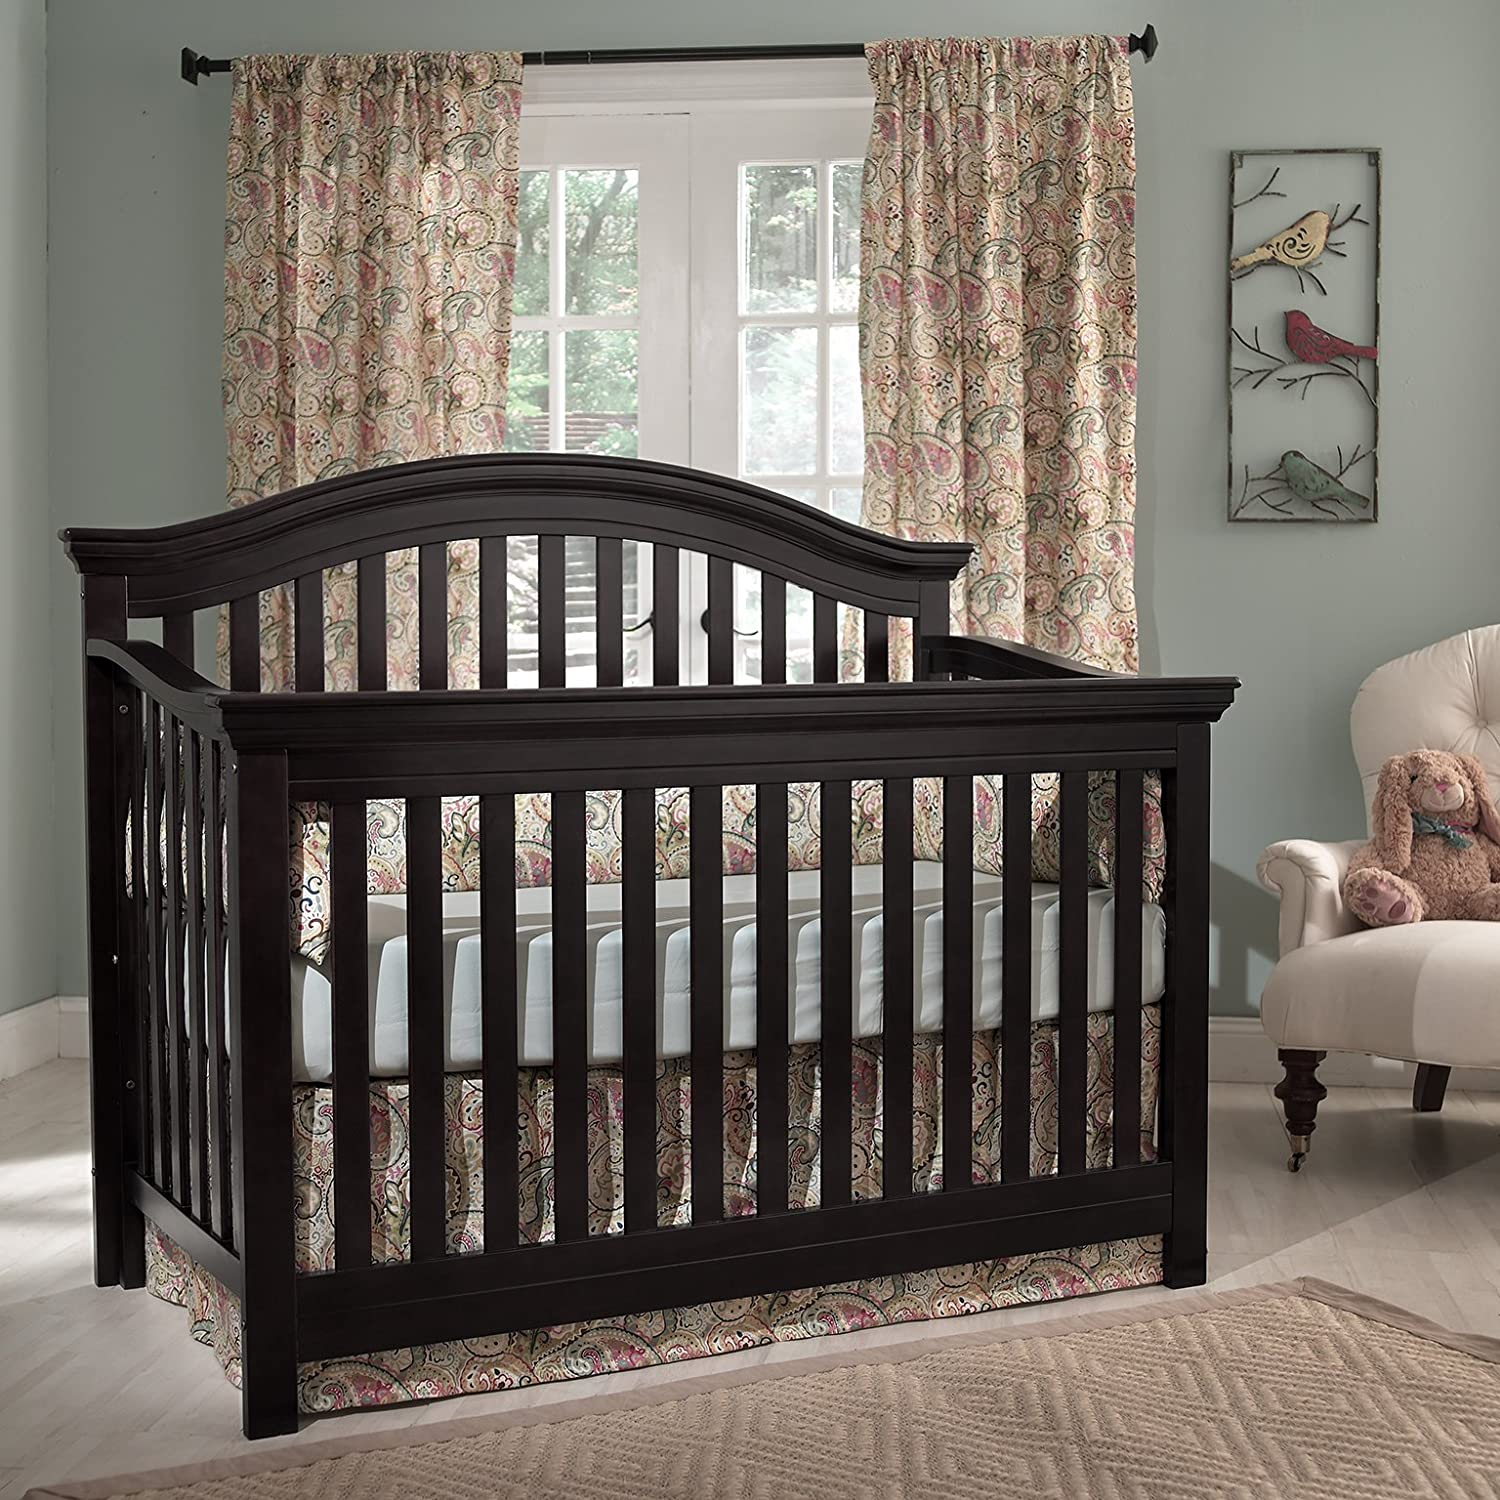 find more i espresso mattress crib for included convertible shermag